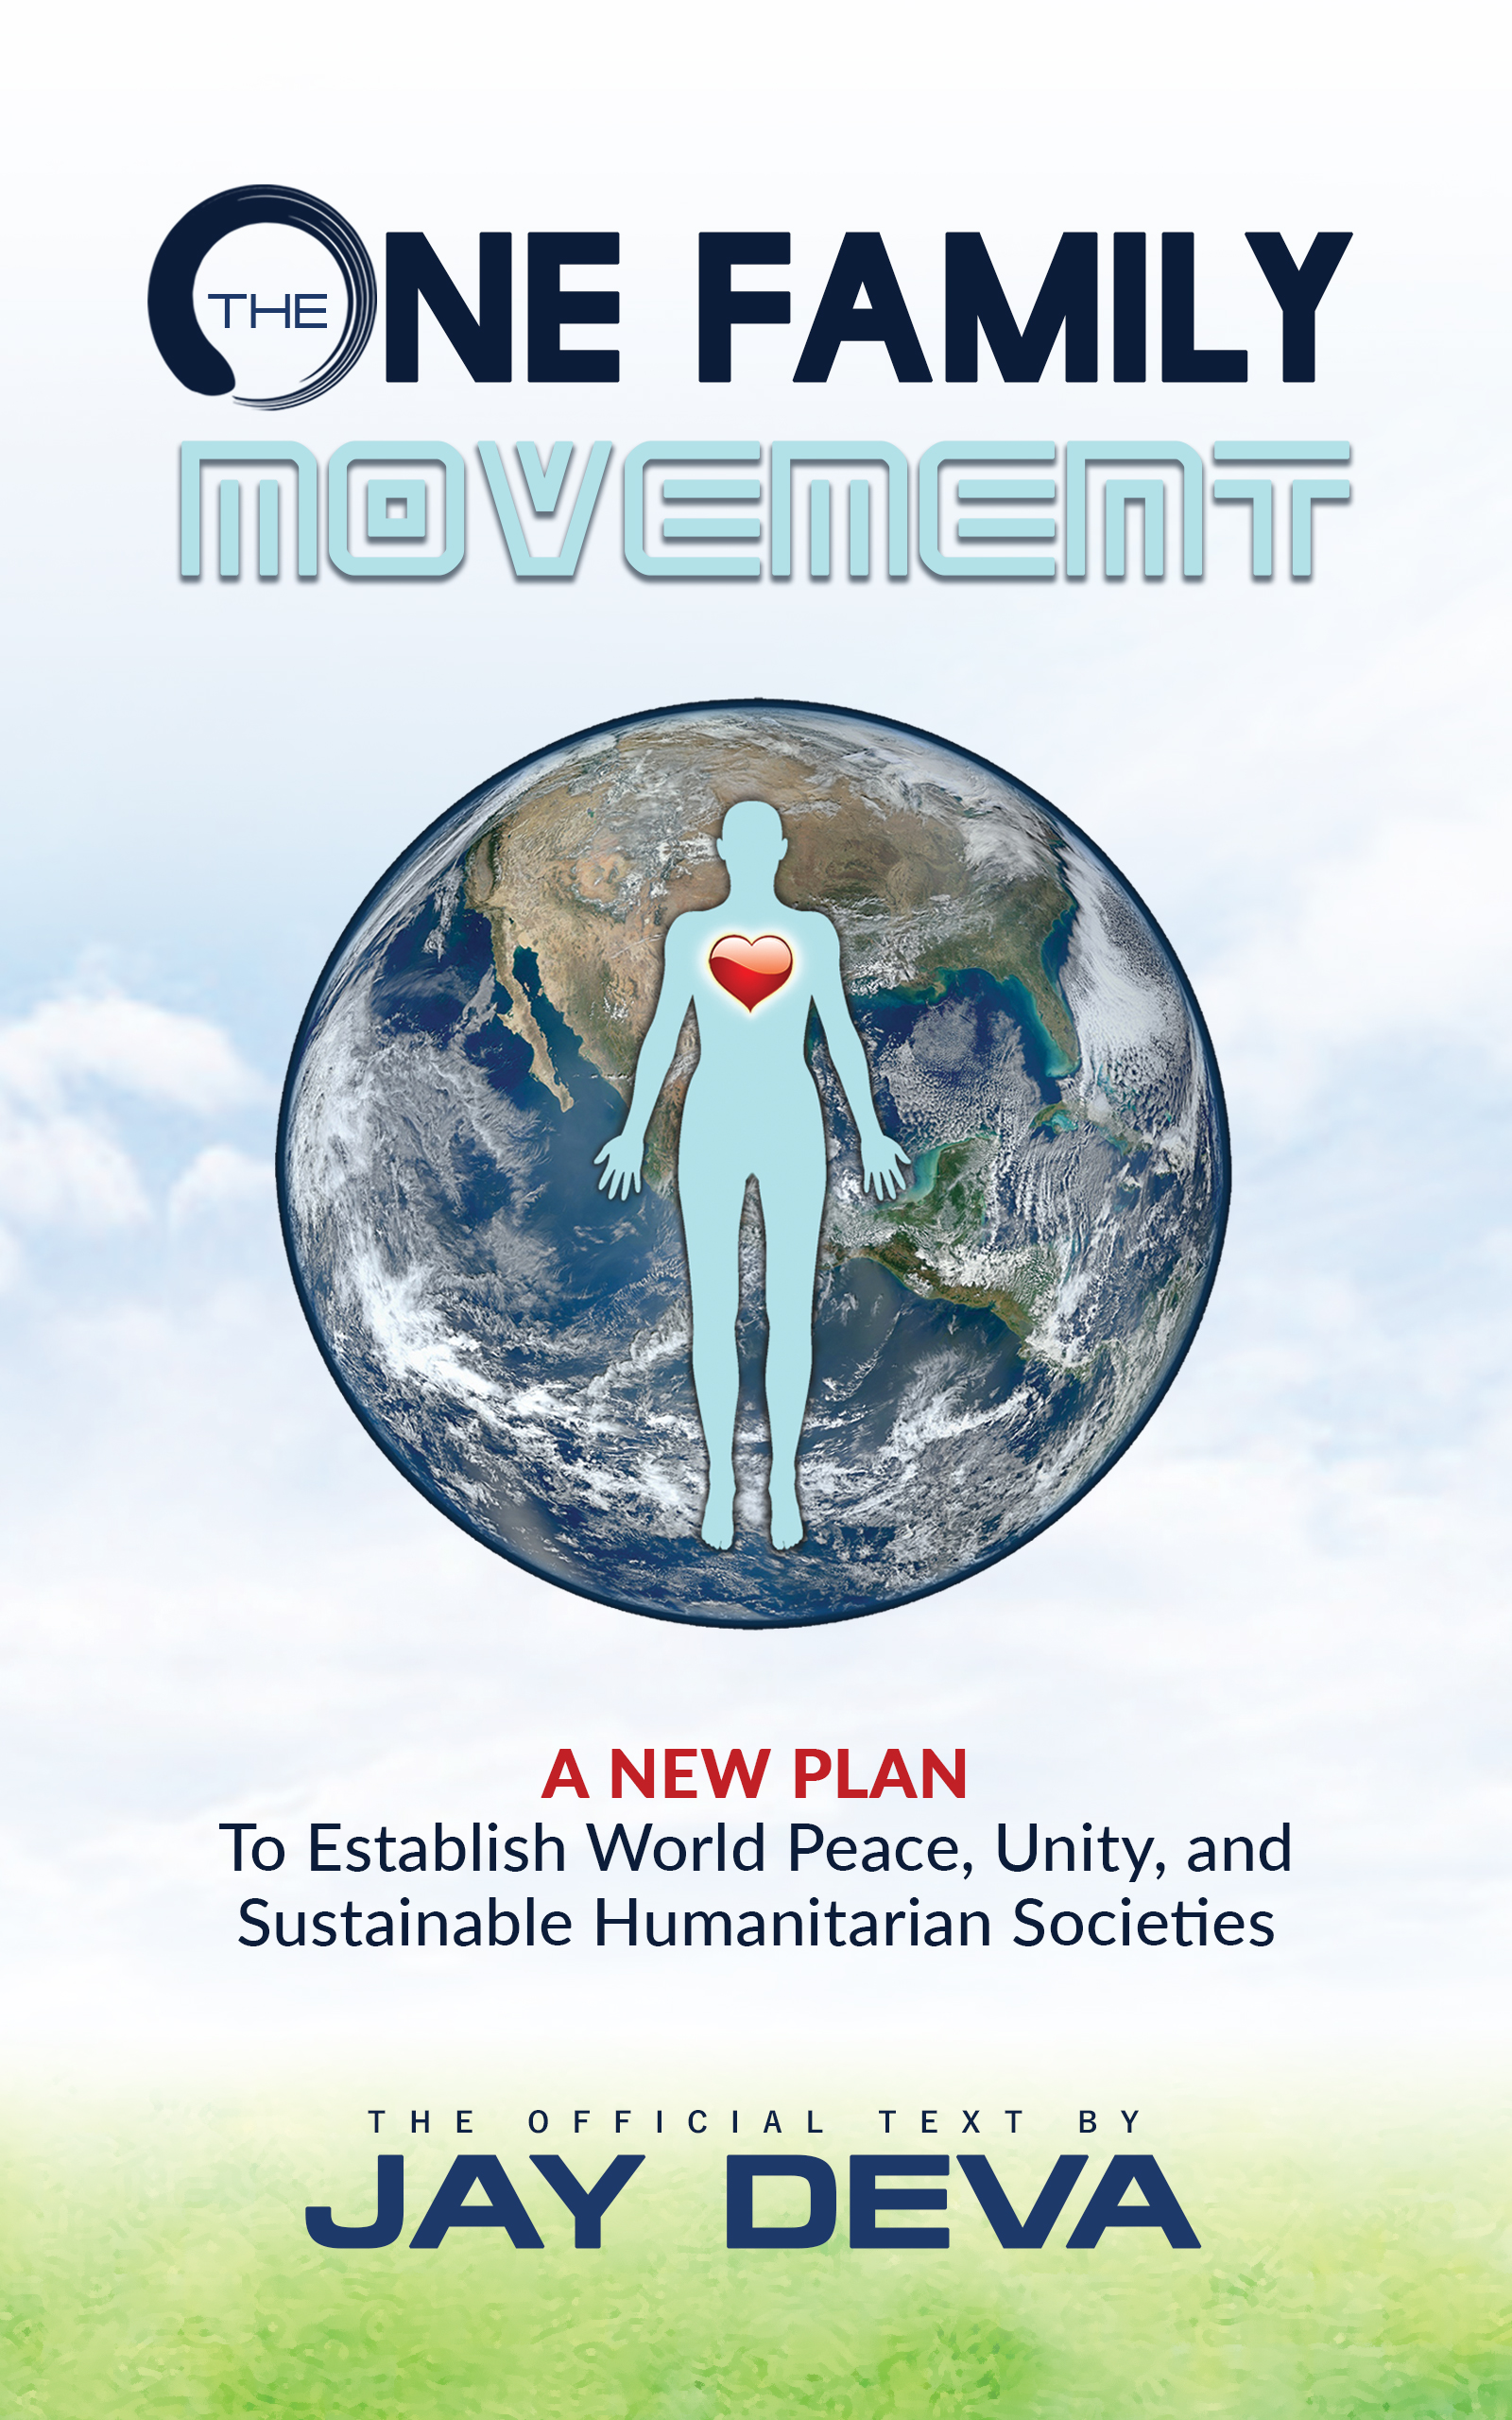 The One Family Movement Book Paperback Amazon YouTube